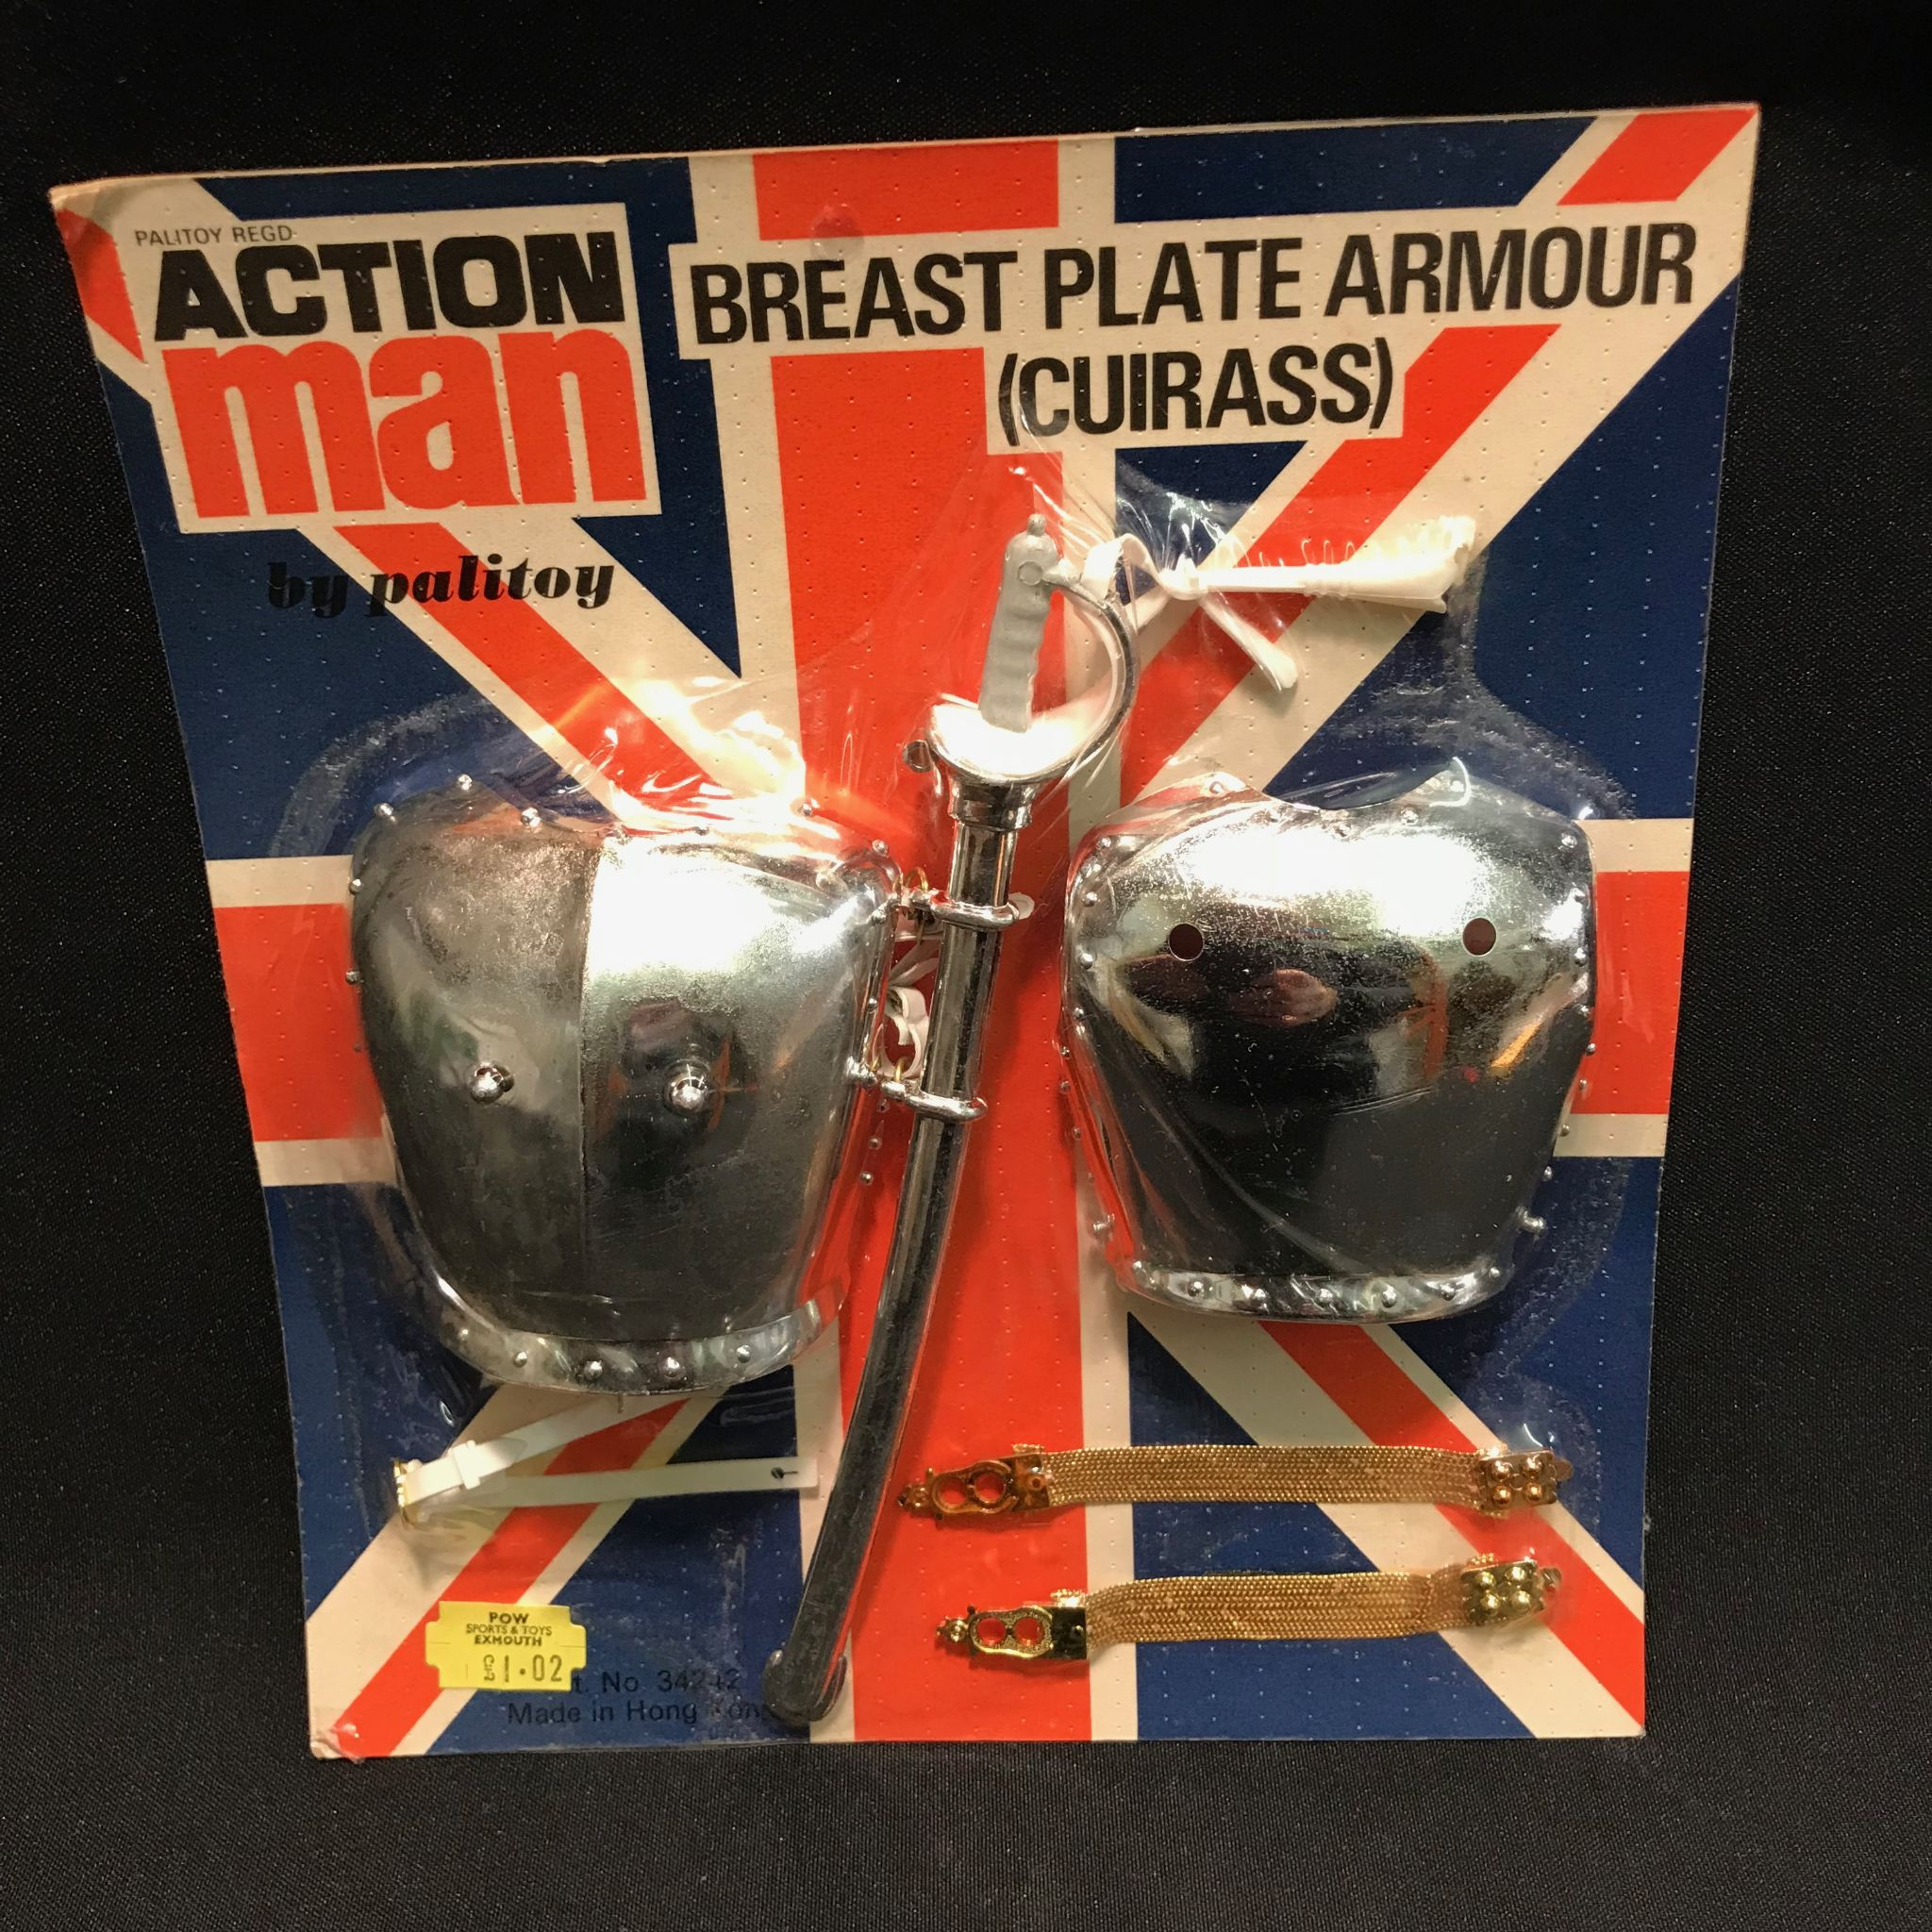 CUIRASS FOR LIFEGUARD ETC VINTAGE ACTION MAN 40th CARDED BREAST PLATE ARMOUR